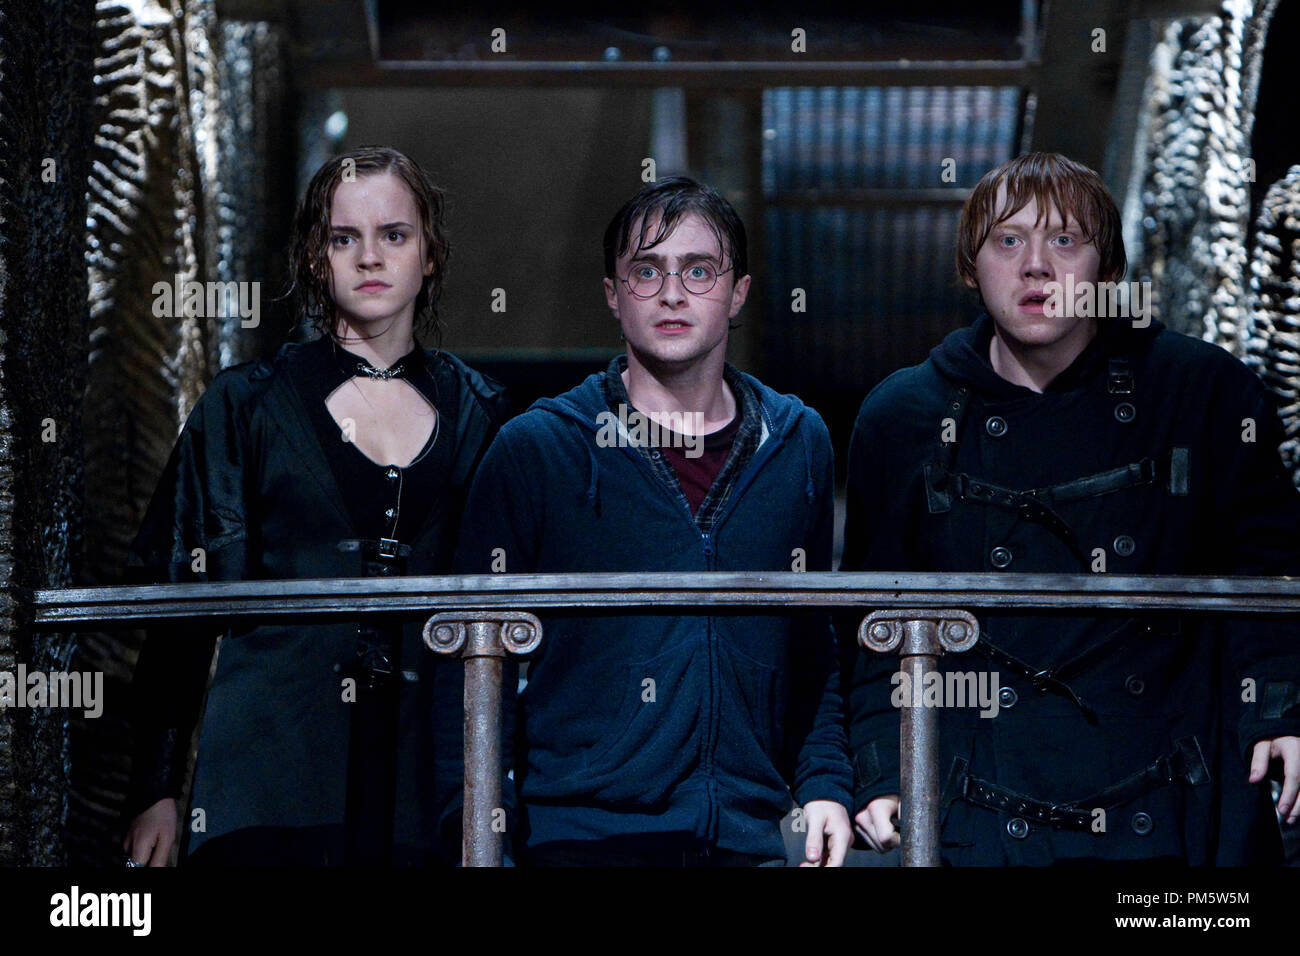 """(L-r) EMMA WATSON as Hermione Granger, DANIEL RADCLIFFE as Harry Potter and RUPERT GRINT as Ron Weasley in Warner Bros. Pictures' fantasy adventure """"HARRY POTTER AND THE DEATHLY HALLOWS – PART 2,"""" a Warner Bros. Pictures release. - Stock Image"""